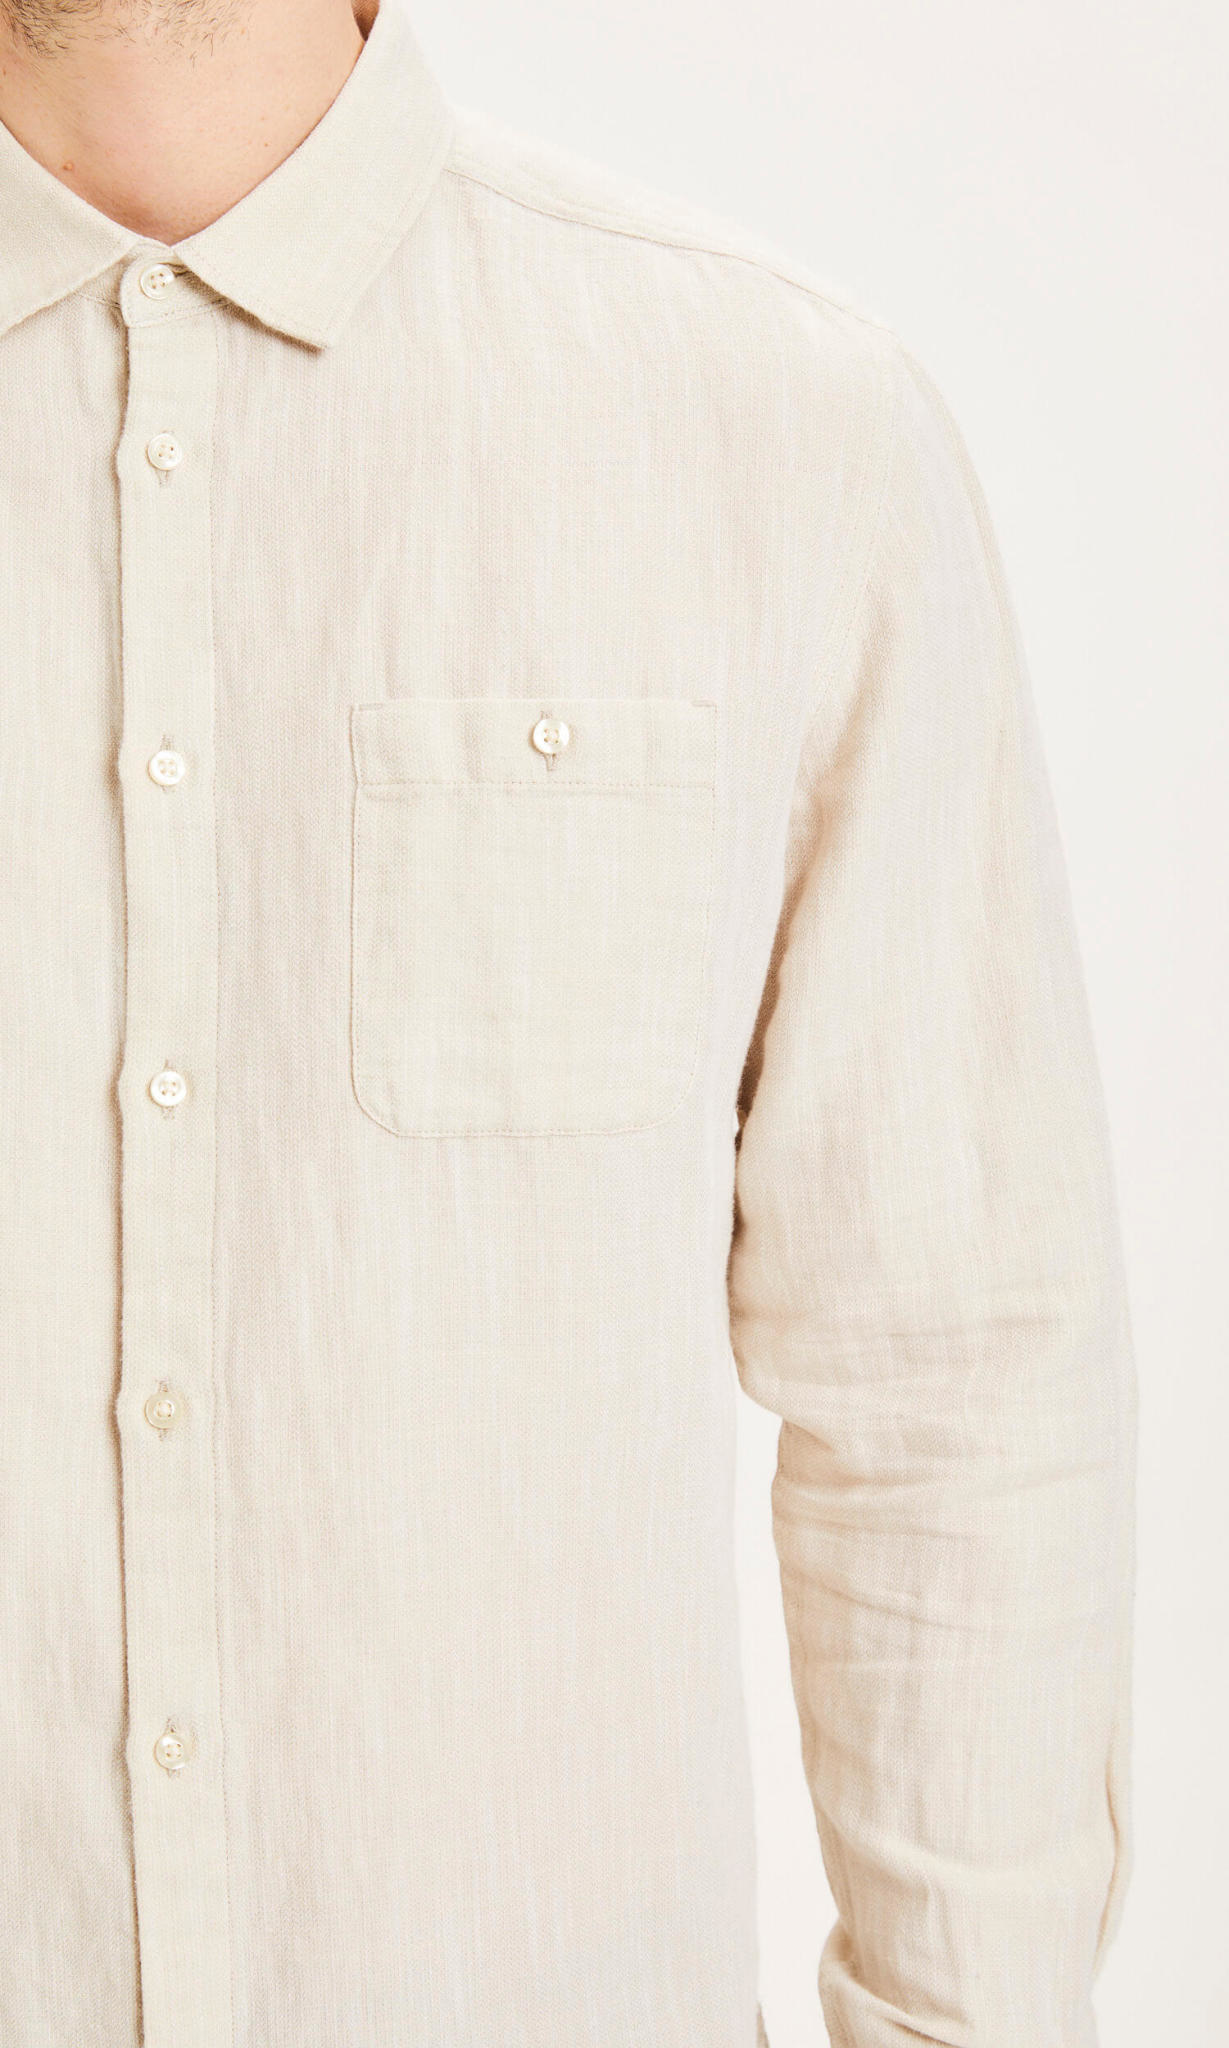 KnowledgeCotton Apparel KnowledgeCotton, Larch linen strutured, feather gray, XL